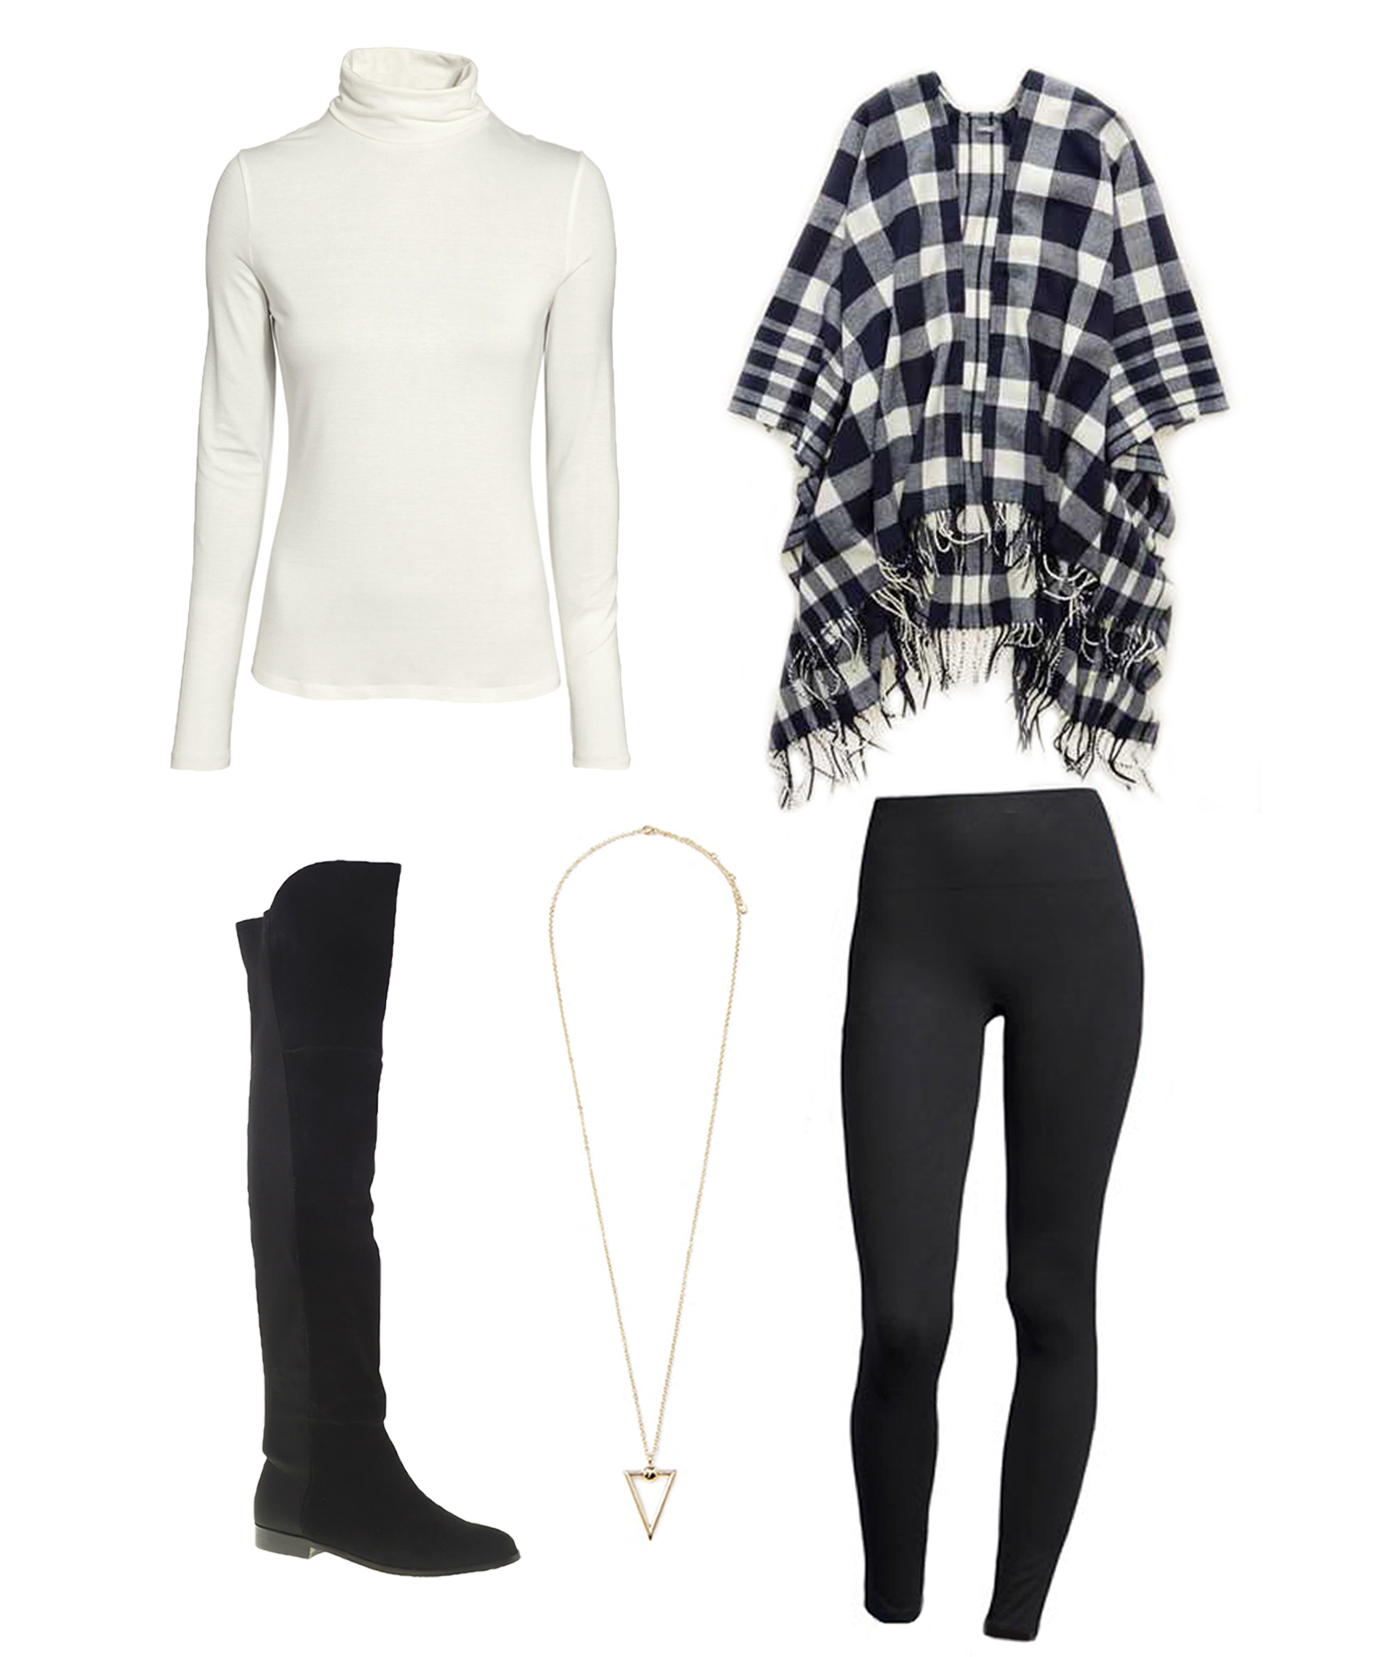 legging-outfit-for-weekend-wear